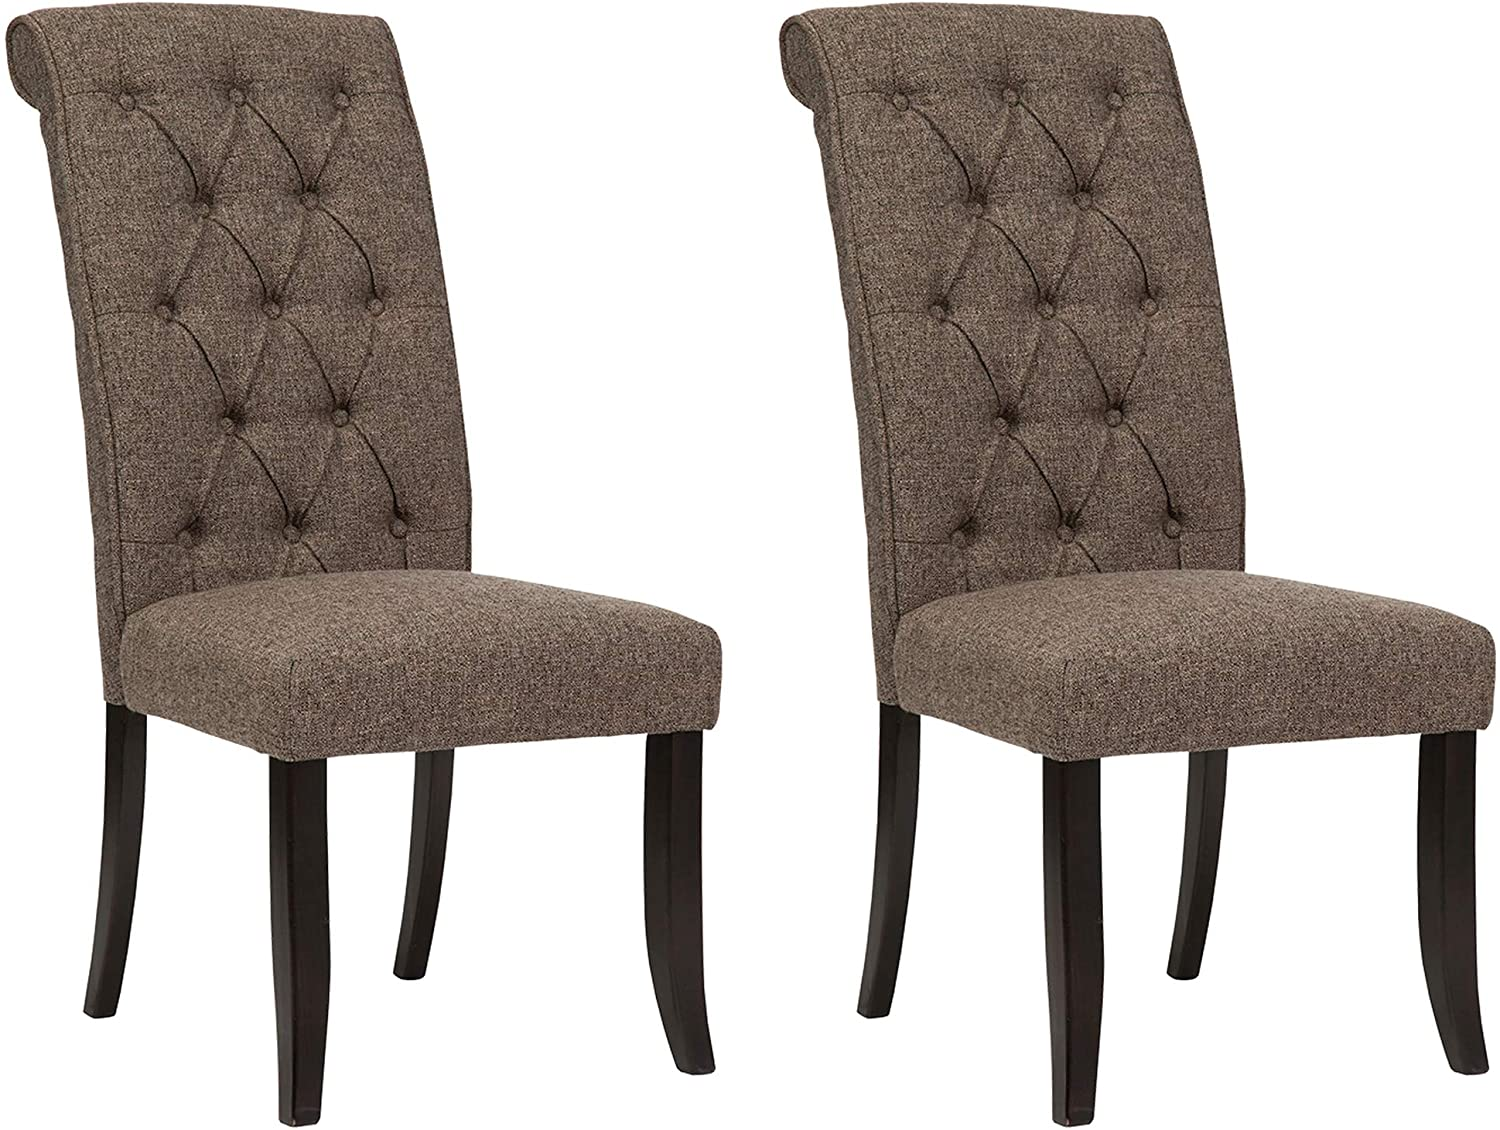 Signature Design by Ashley D530-02 Parsons Accent Dining Chair